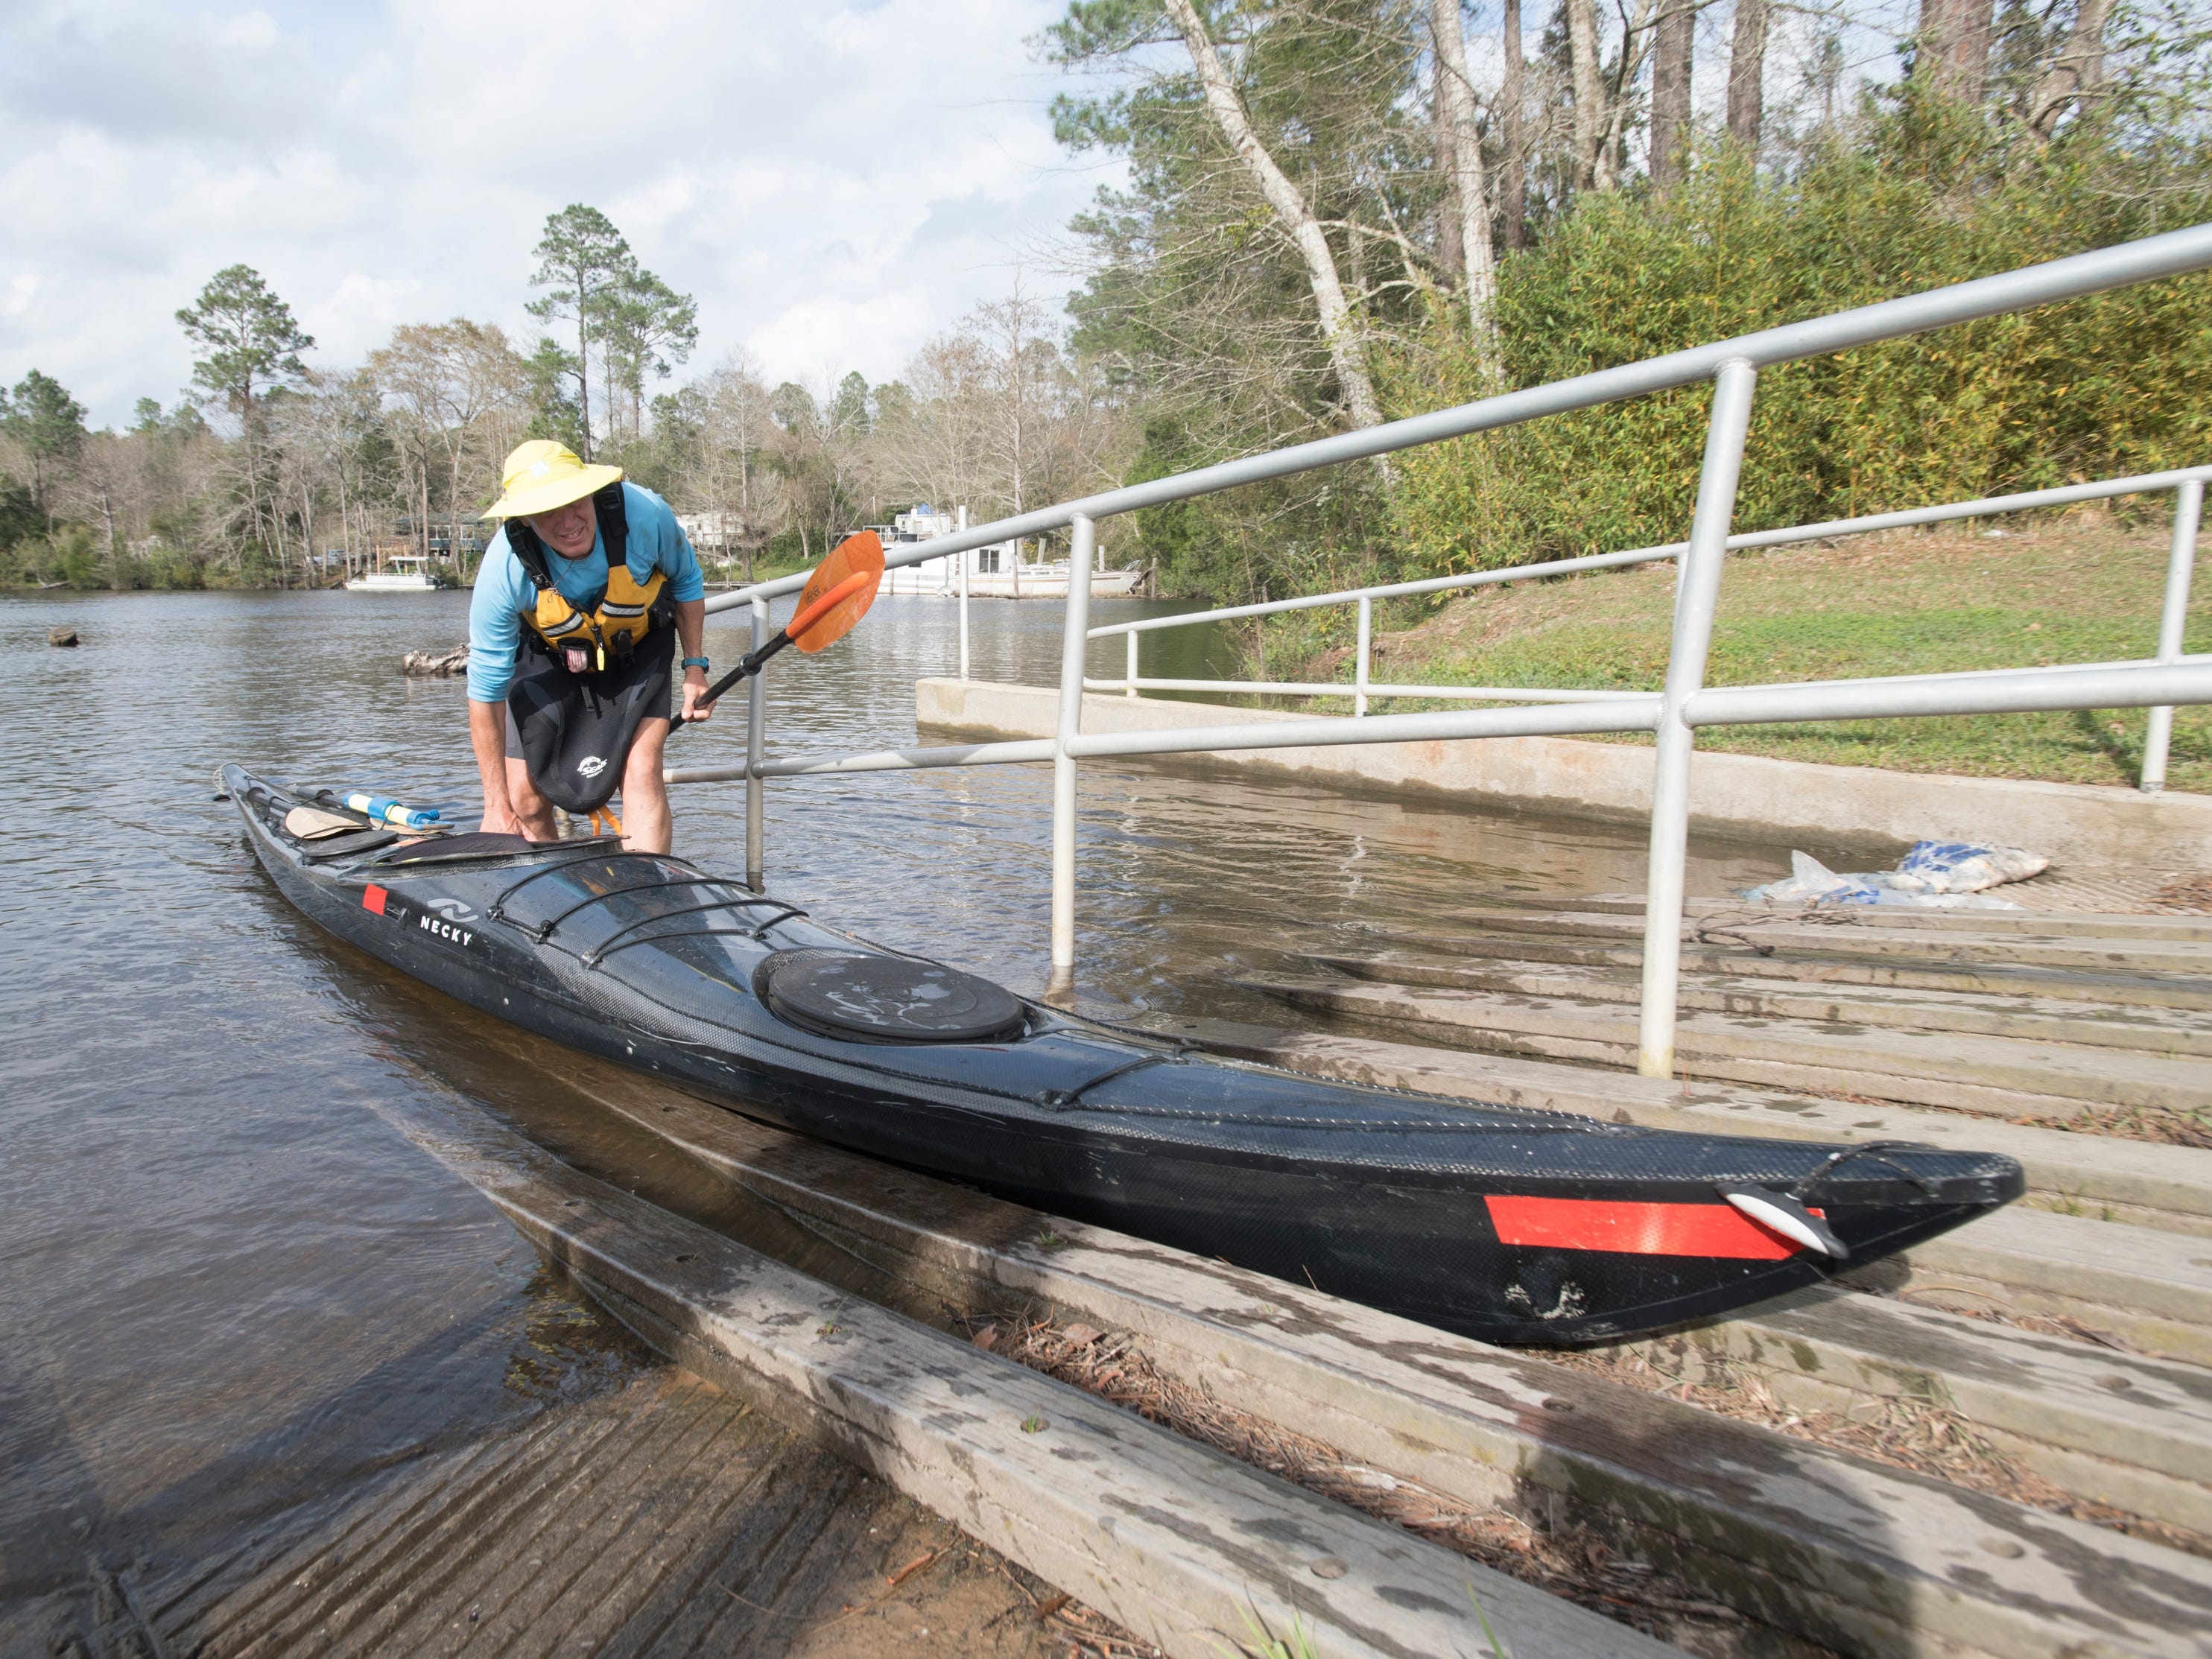 Paul Gelderblom, of Charlevoix, Michigan, removes his kayak at the Wilson Robertson Boat Ramp on the Perdido River in Pensacola on Monday, March 11, 2019.  Paddle Florida is hosting 60 paddlers on a 5-day, 60-mile journey from Otto Hill to Perdido Pass.  Florida is currently working with Alabama to establish a paddling trail on the Perdido River.